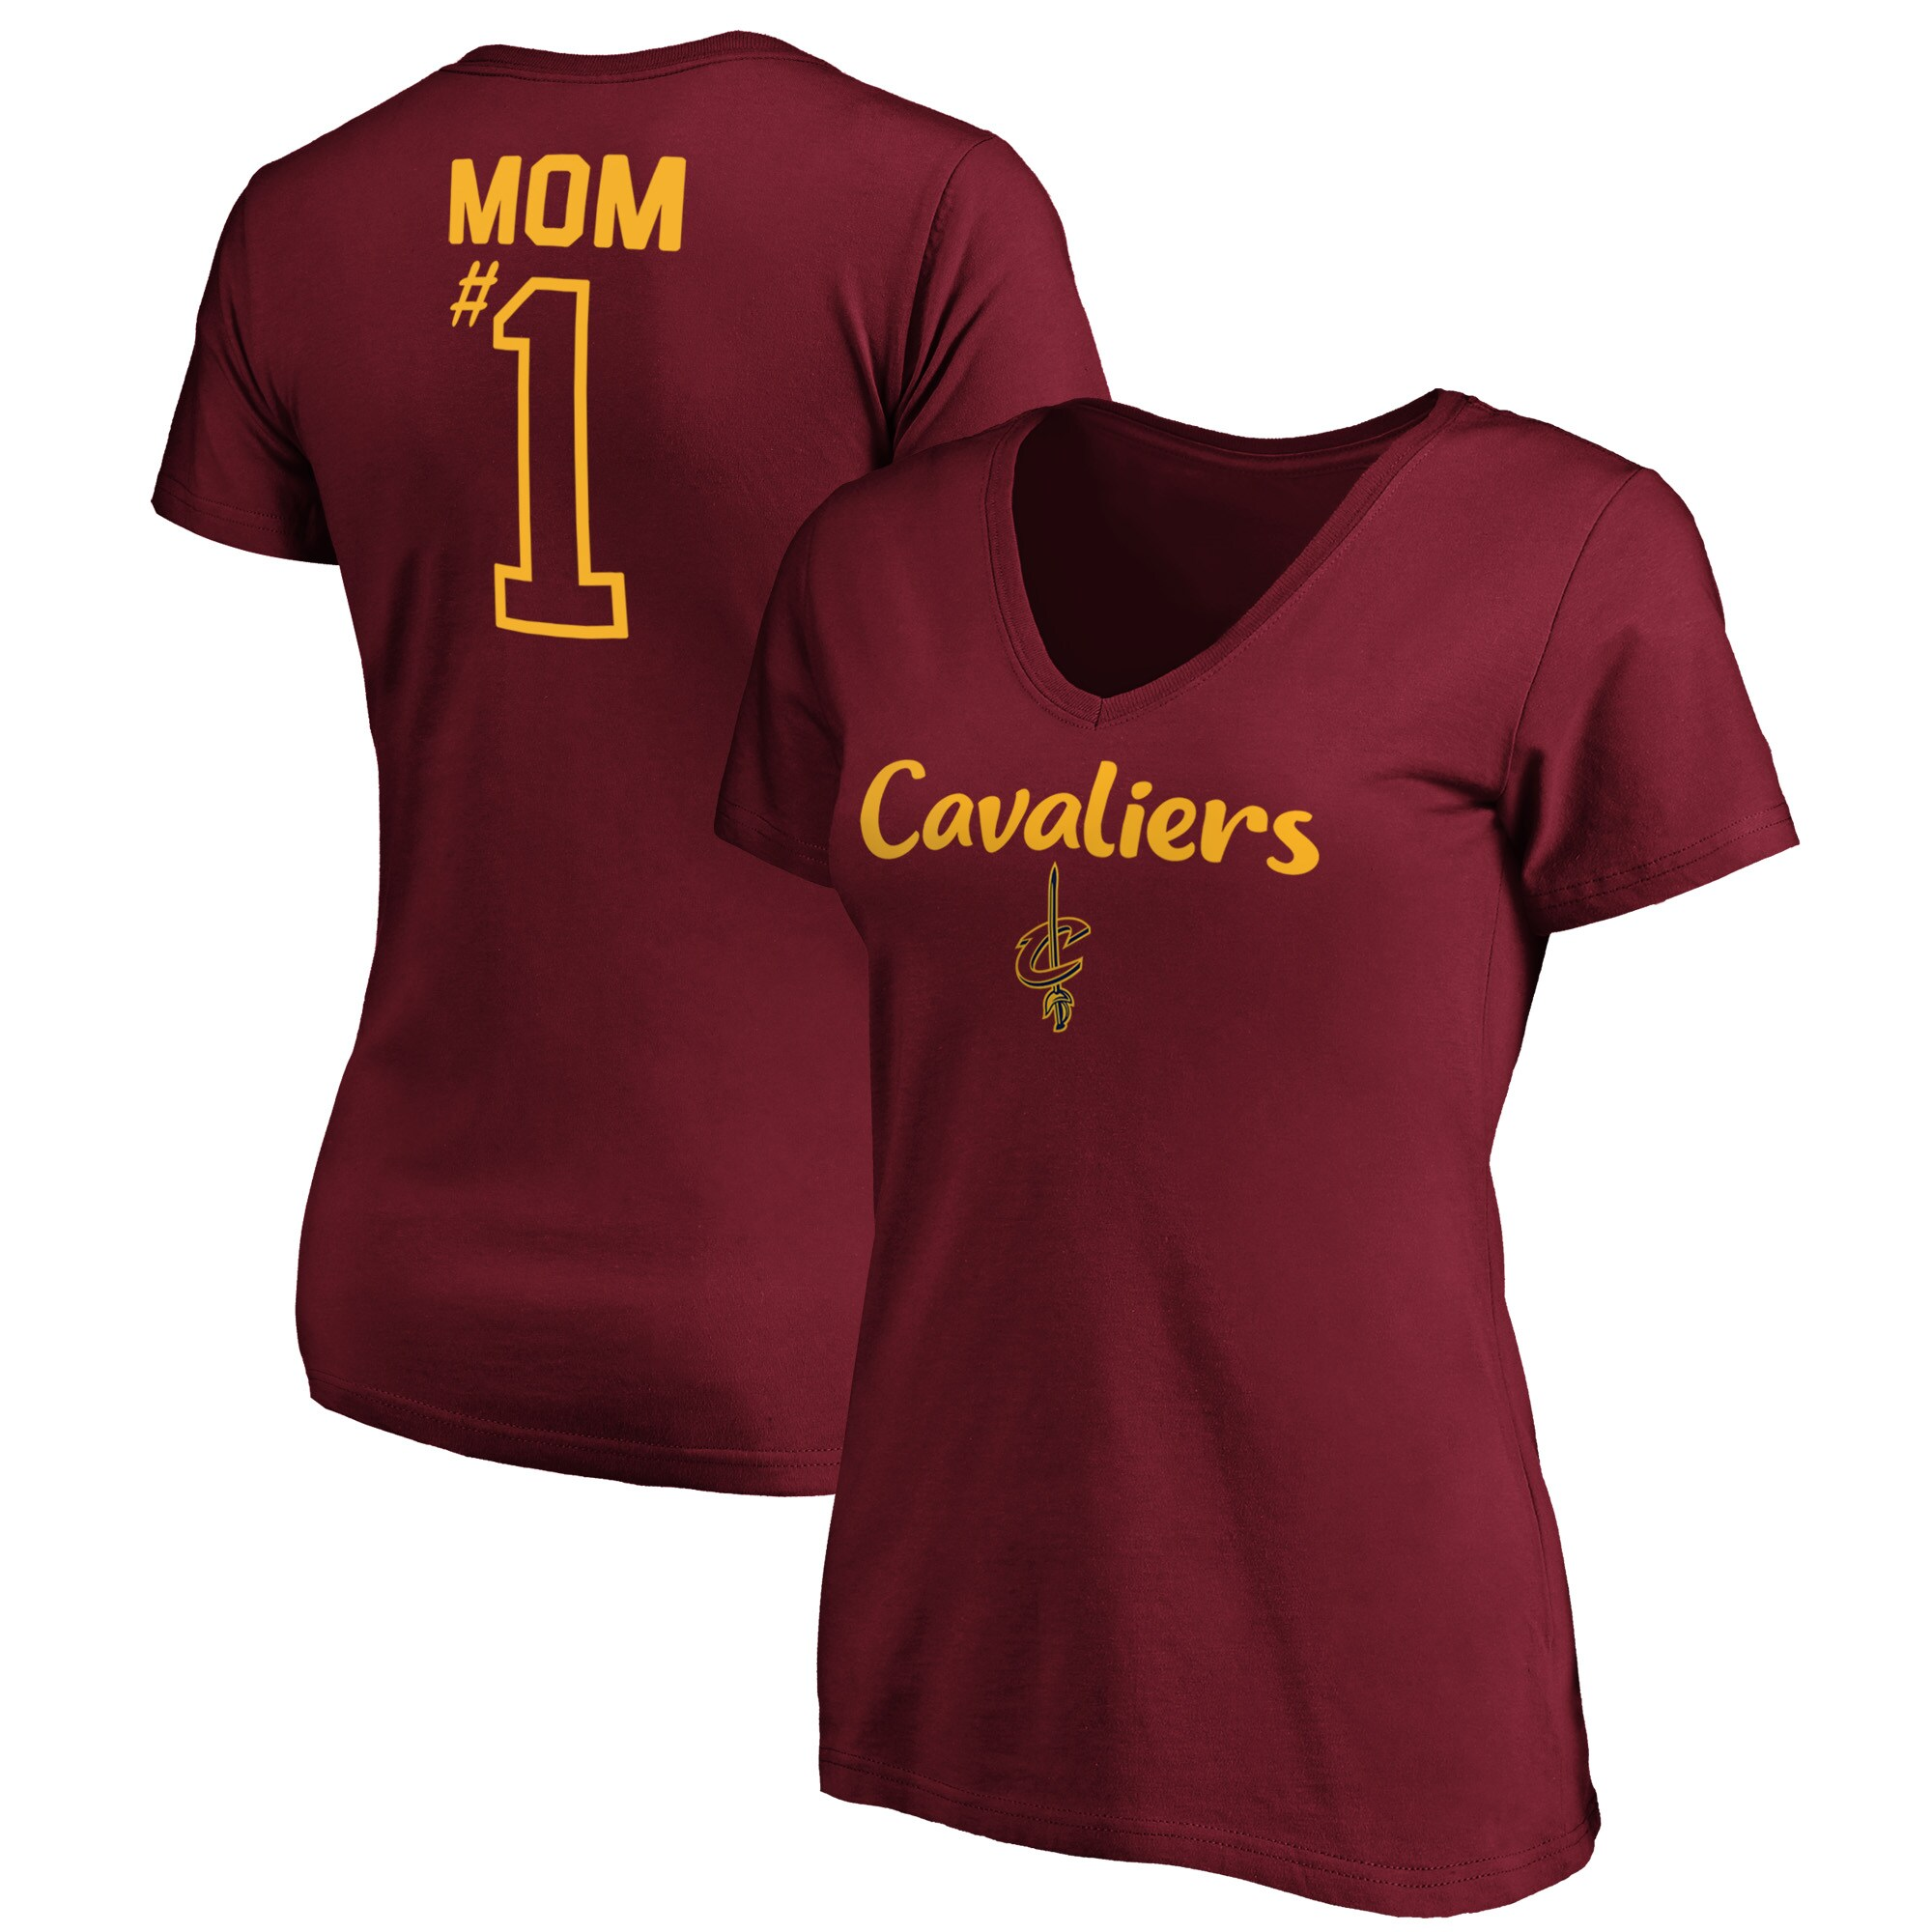 Large Red NBA Cleveland Cavaliers Womens Champions Baby Jersey V-Neck Short Sleeve Tee